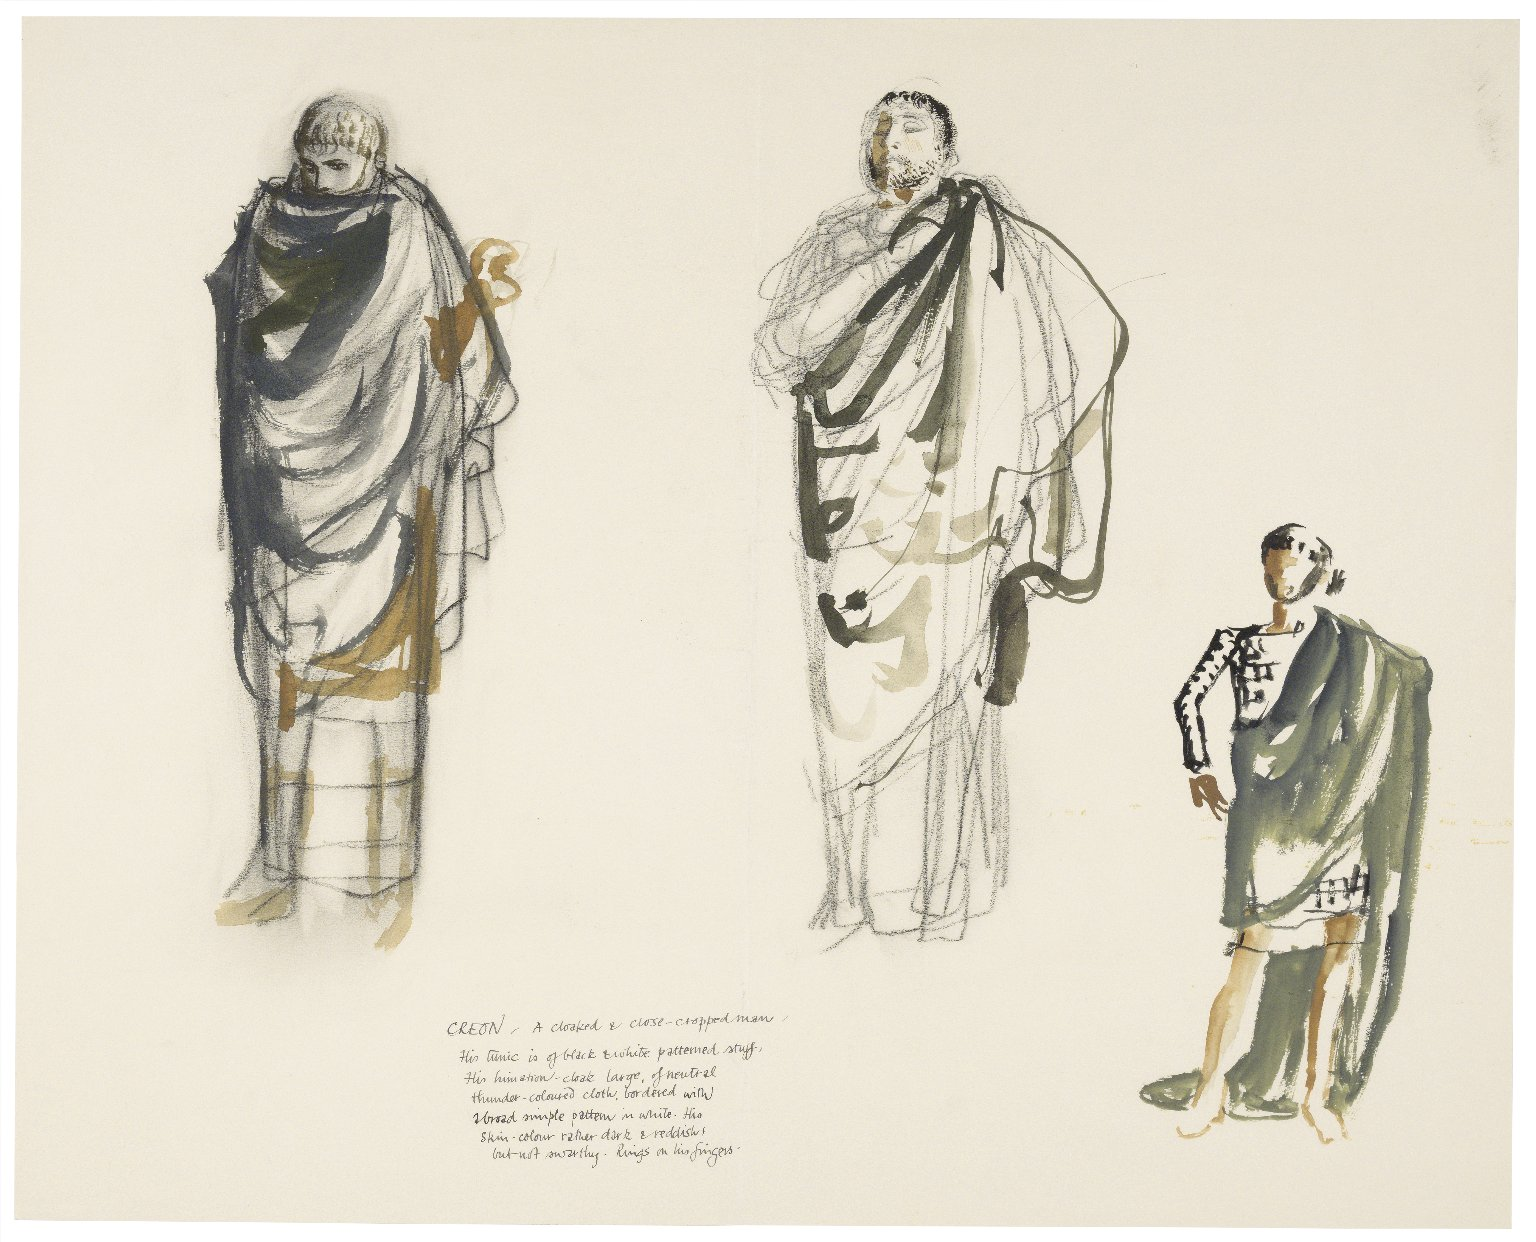 Oedipus Rex, costume drawings for Creon